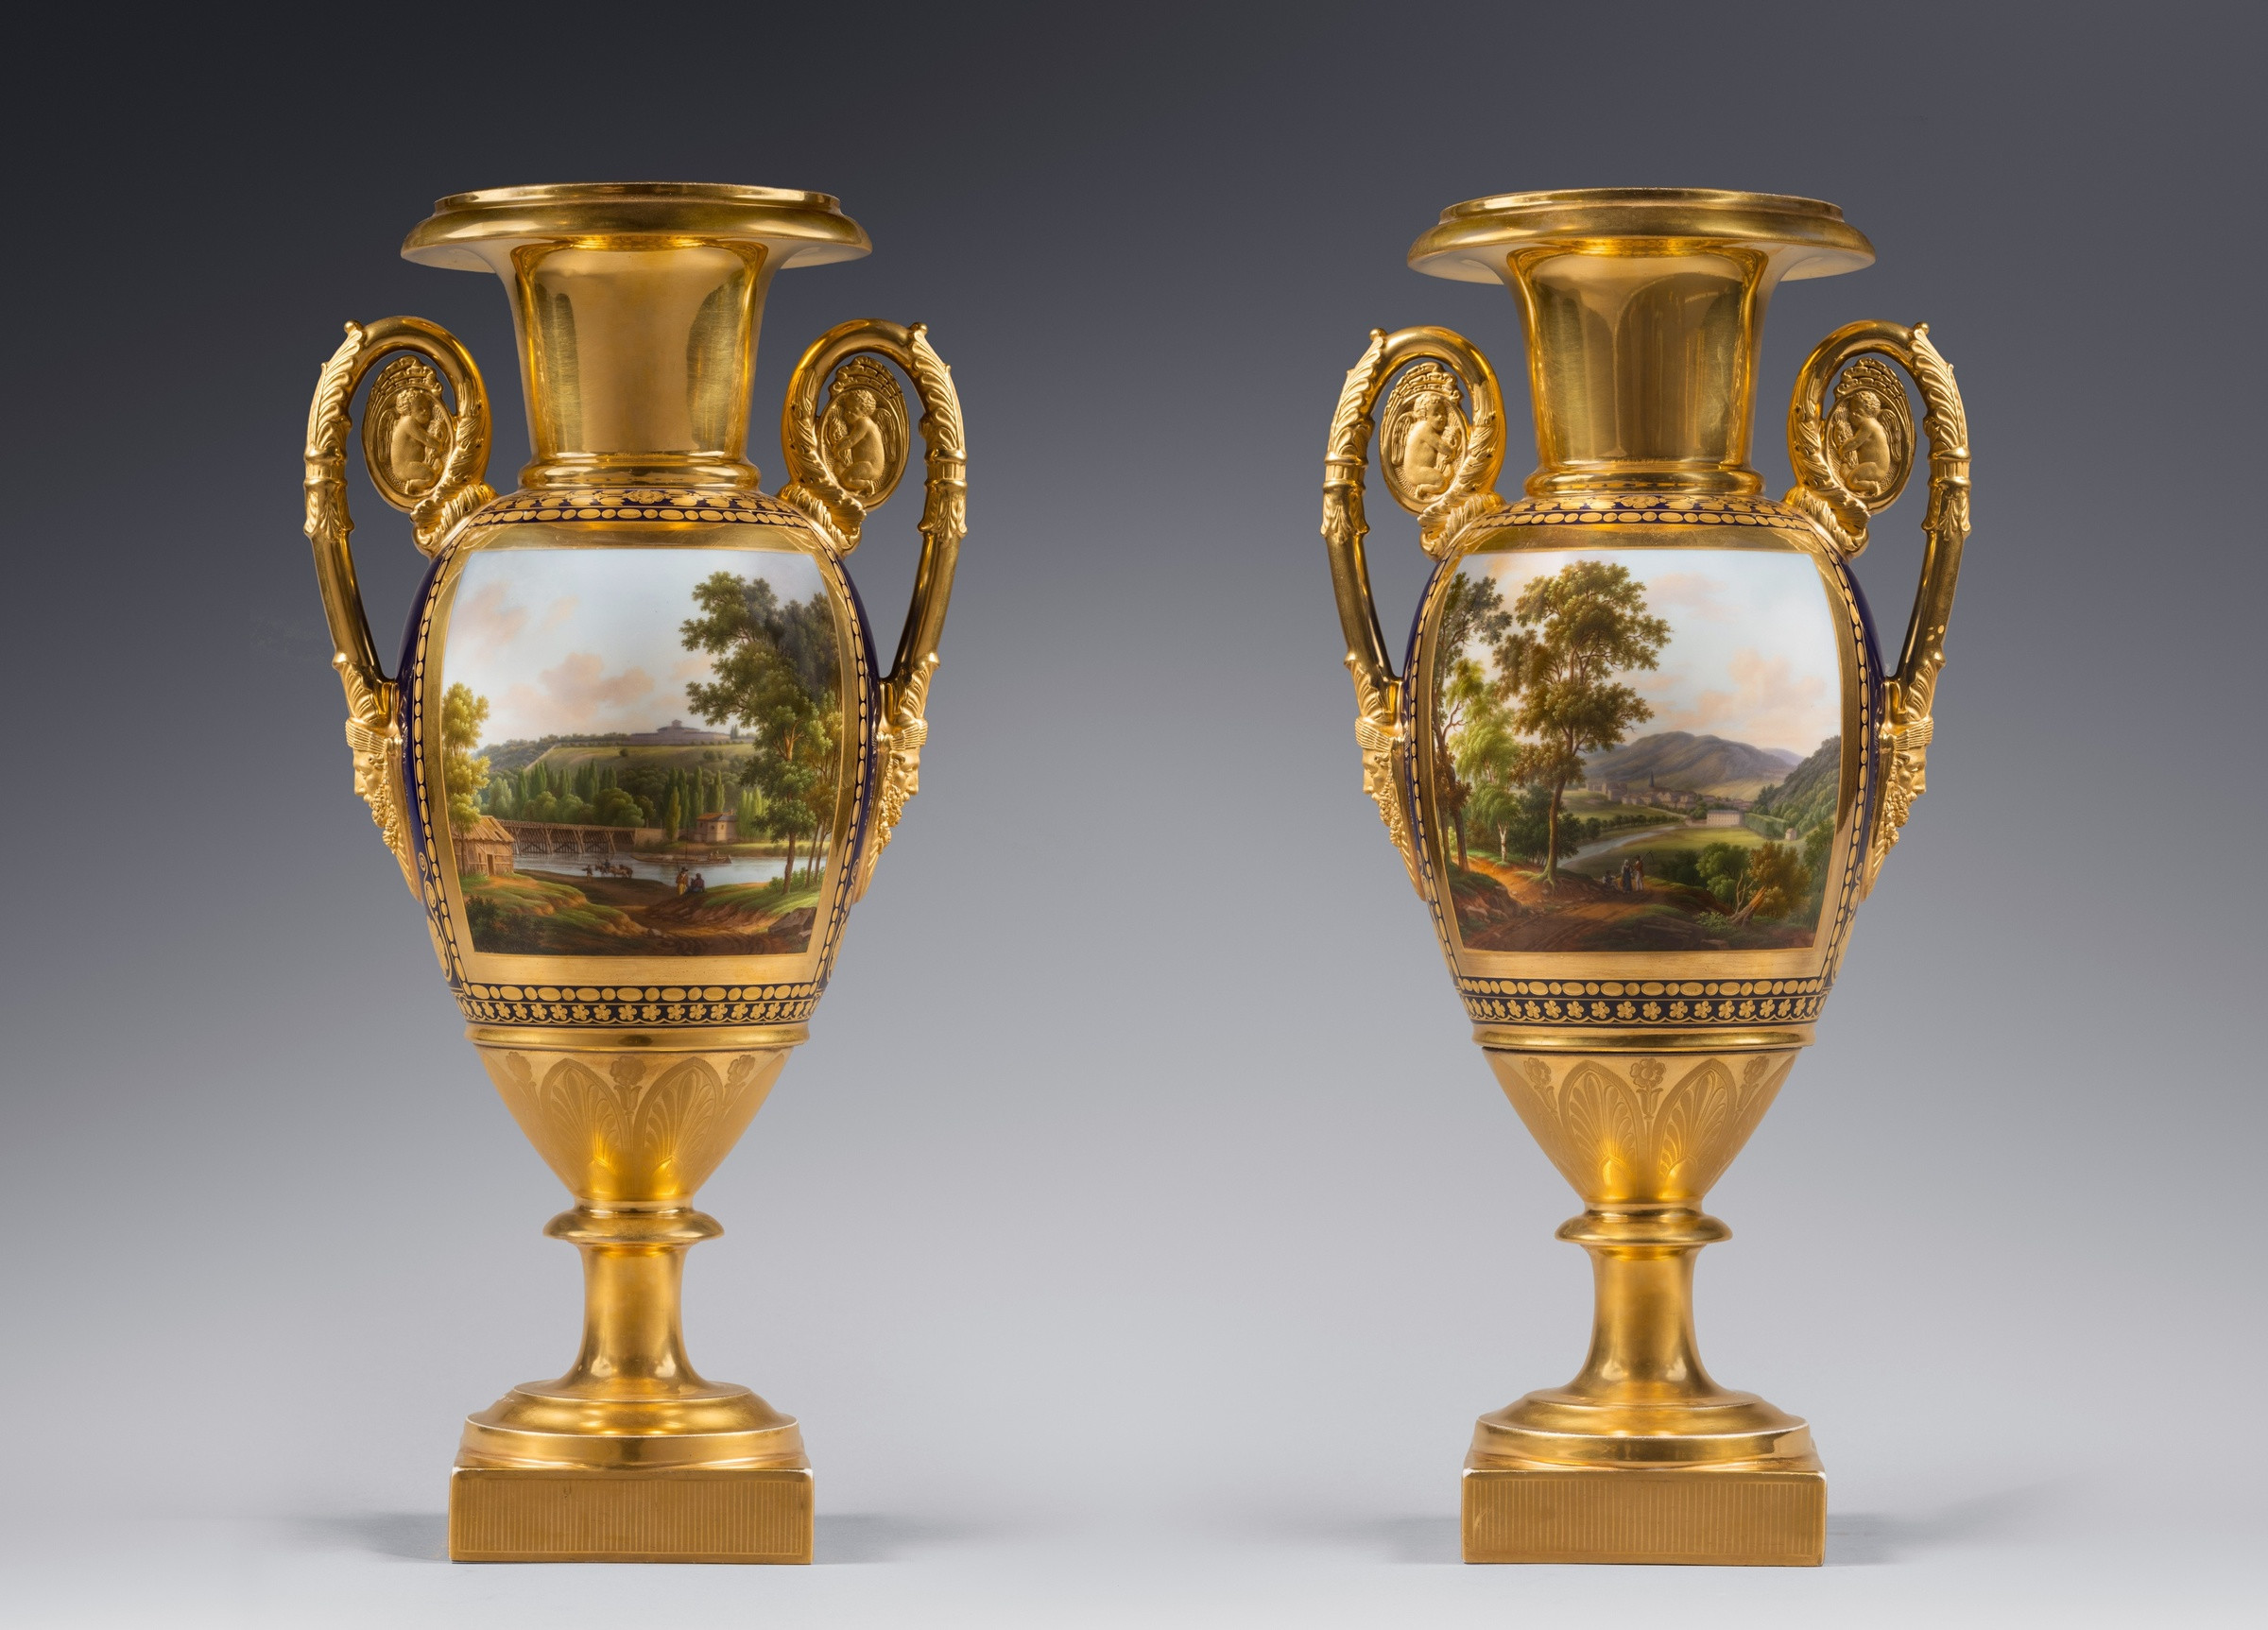 25 attractive Urn Vases Cheap 2021 free download urn vases cheap of nast frac2a8res manufactory attributed to a pair of restauration two intended for a pair of restauration two handled vases probably by nast frac2a8res manufactory